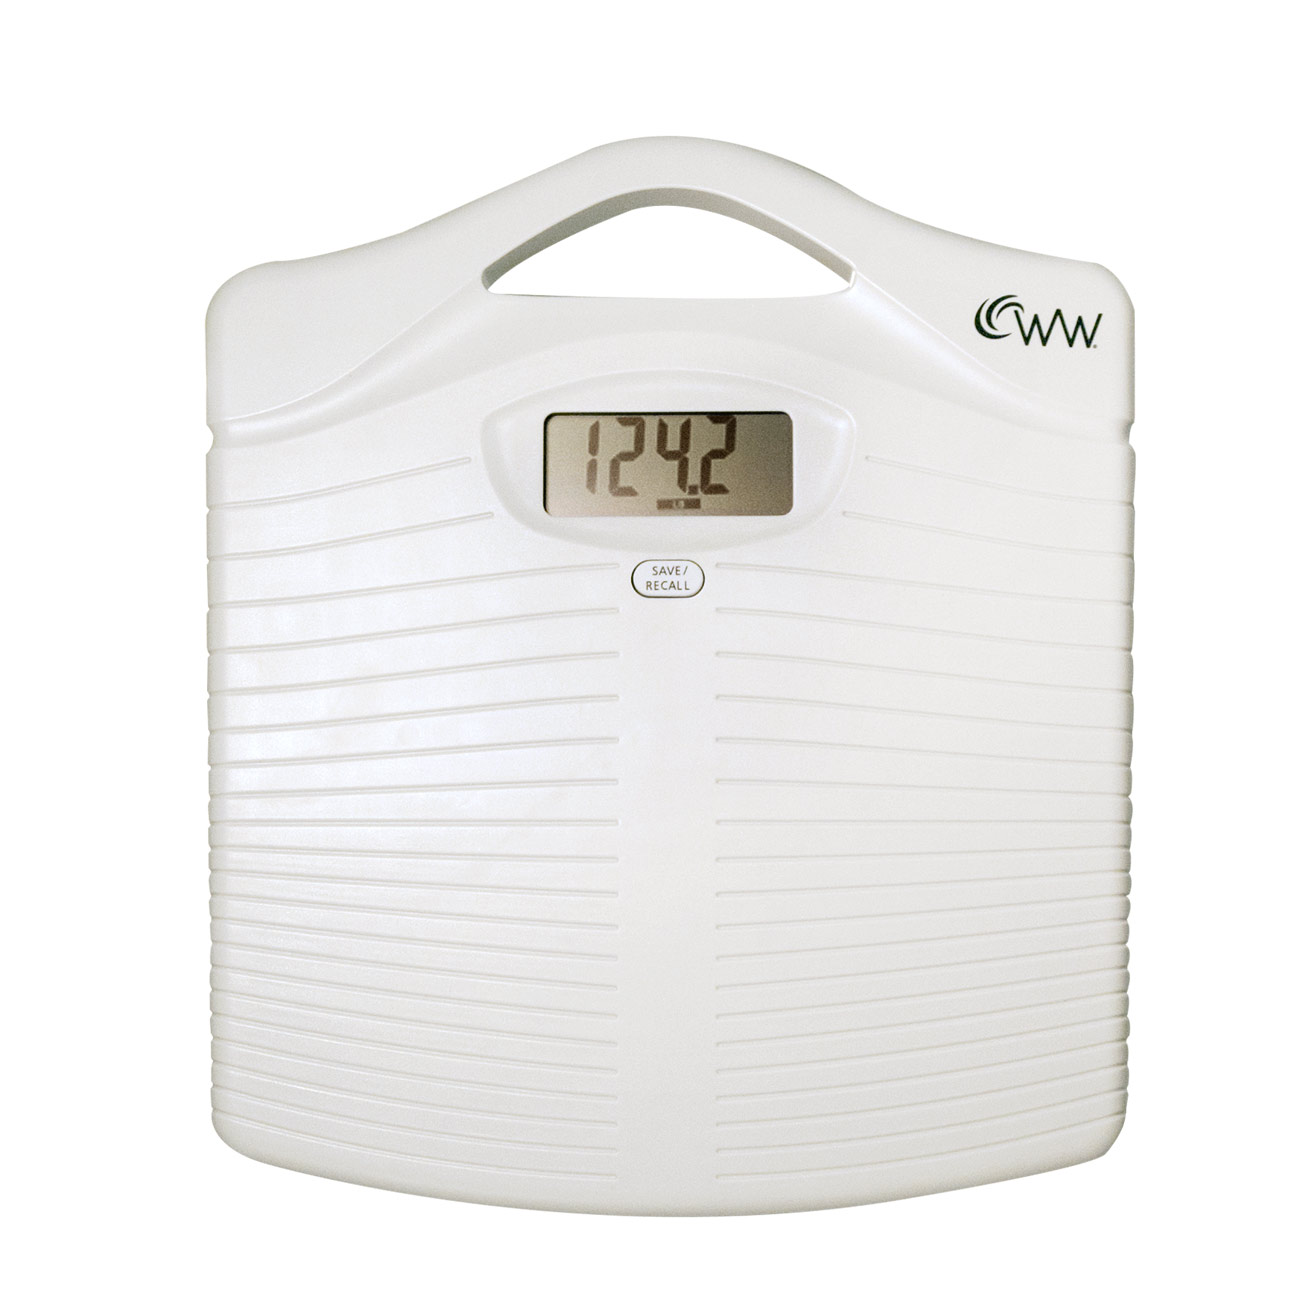 Weight Watchers Scale by Conair